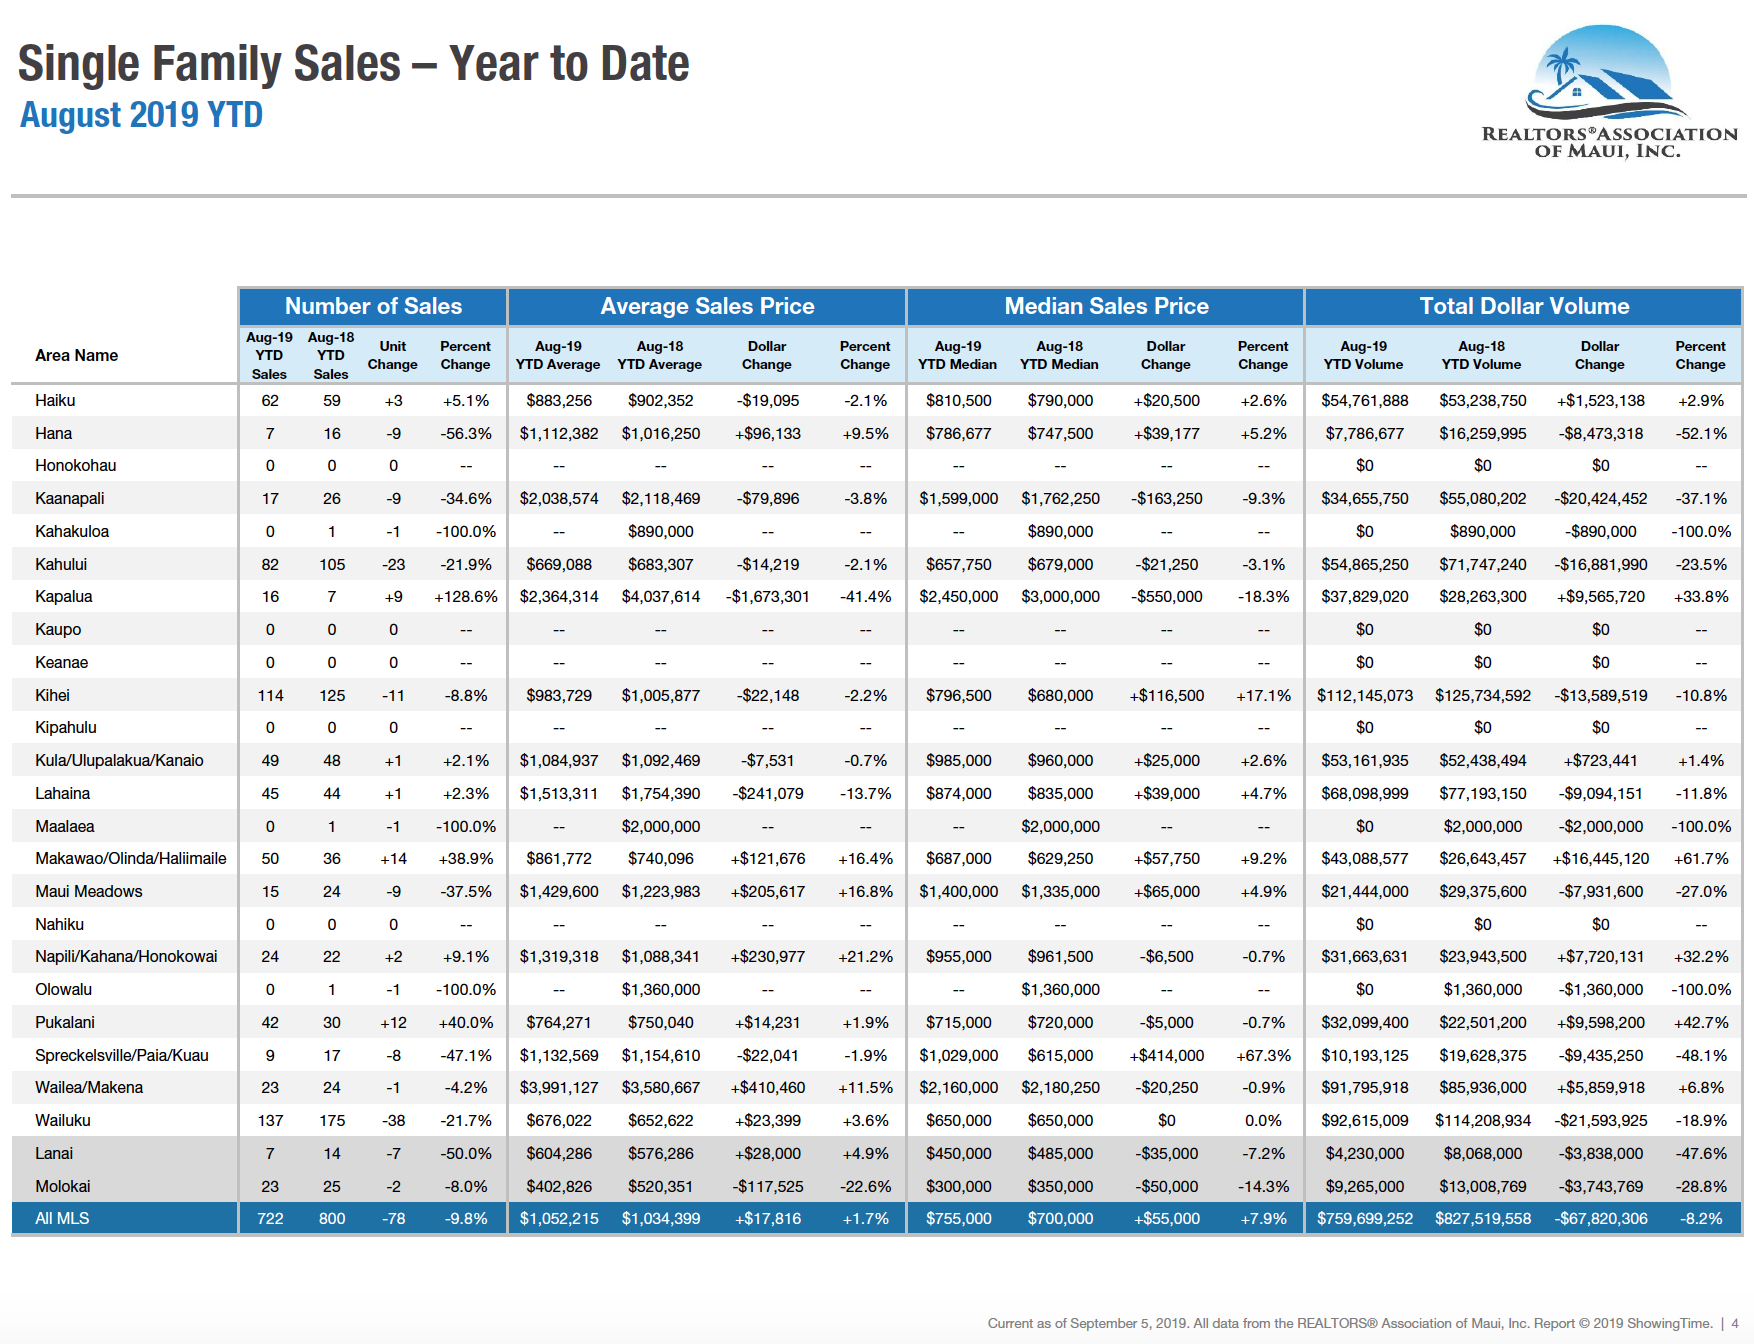 Maui single family home sales year to date through August 2019.